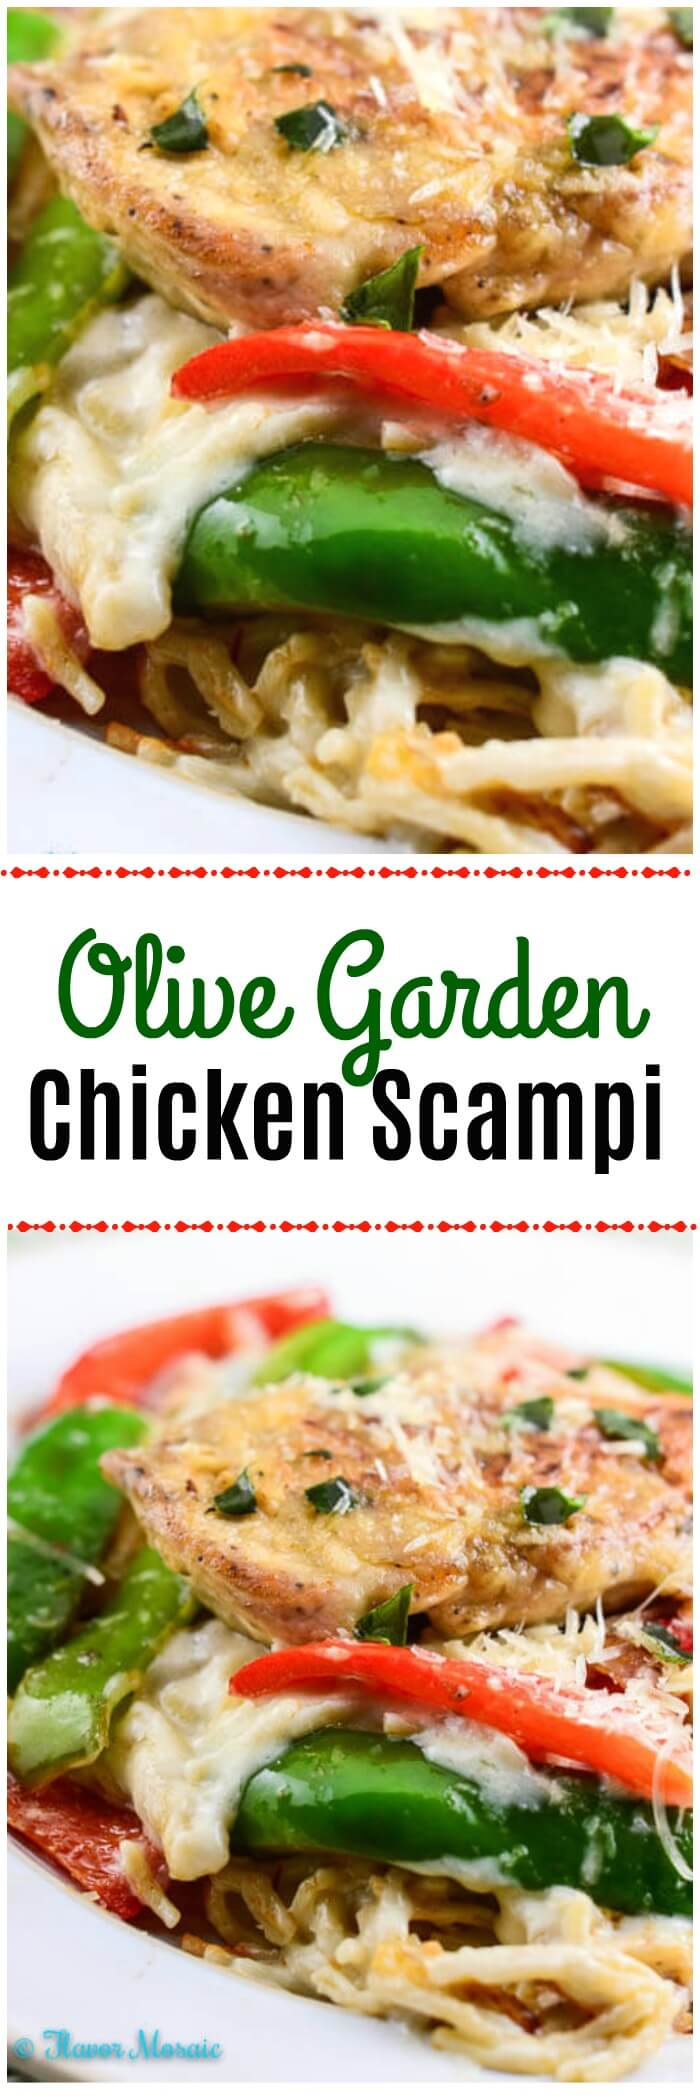 Olive Garden Chicken Scampi Sauce Recipe